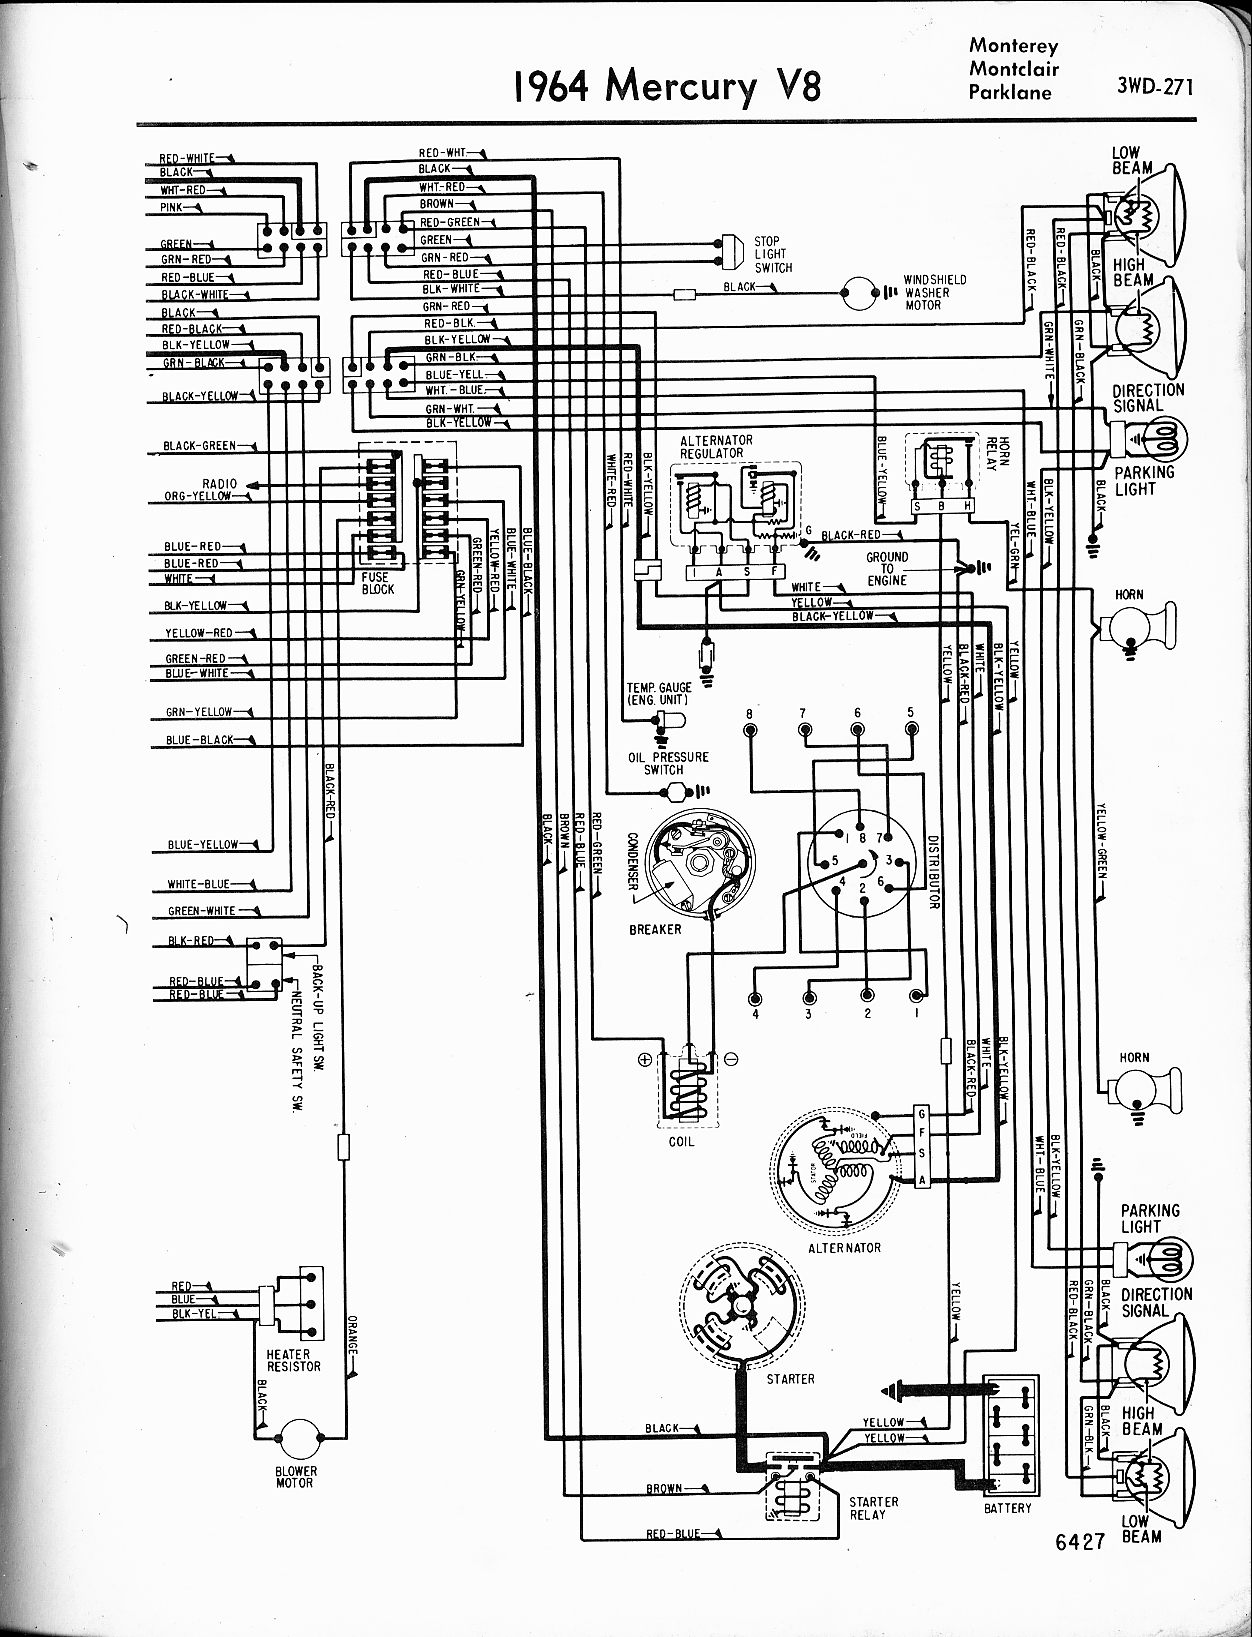 Project Wiring Diagram Schematics 1991 Geo Storm Mercury Diagrams The Old Car Manual Color Standards 1964 V8 Monterey Montclair